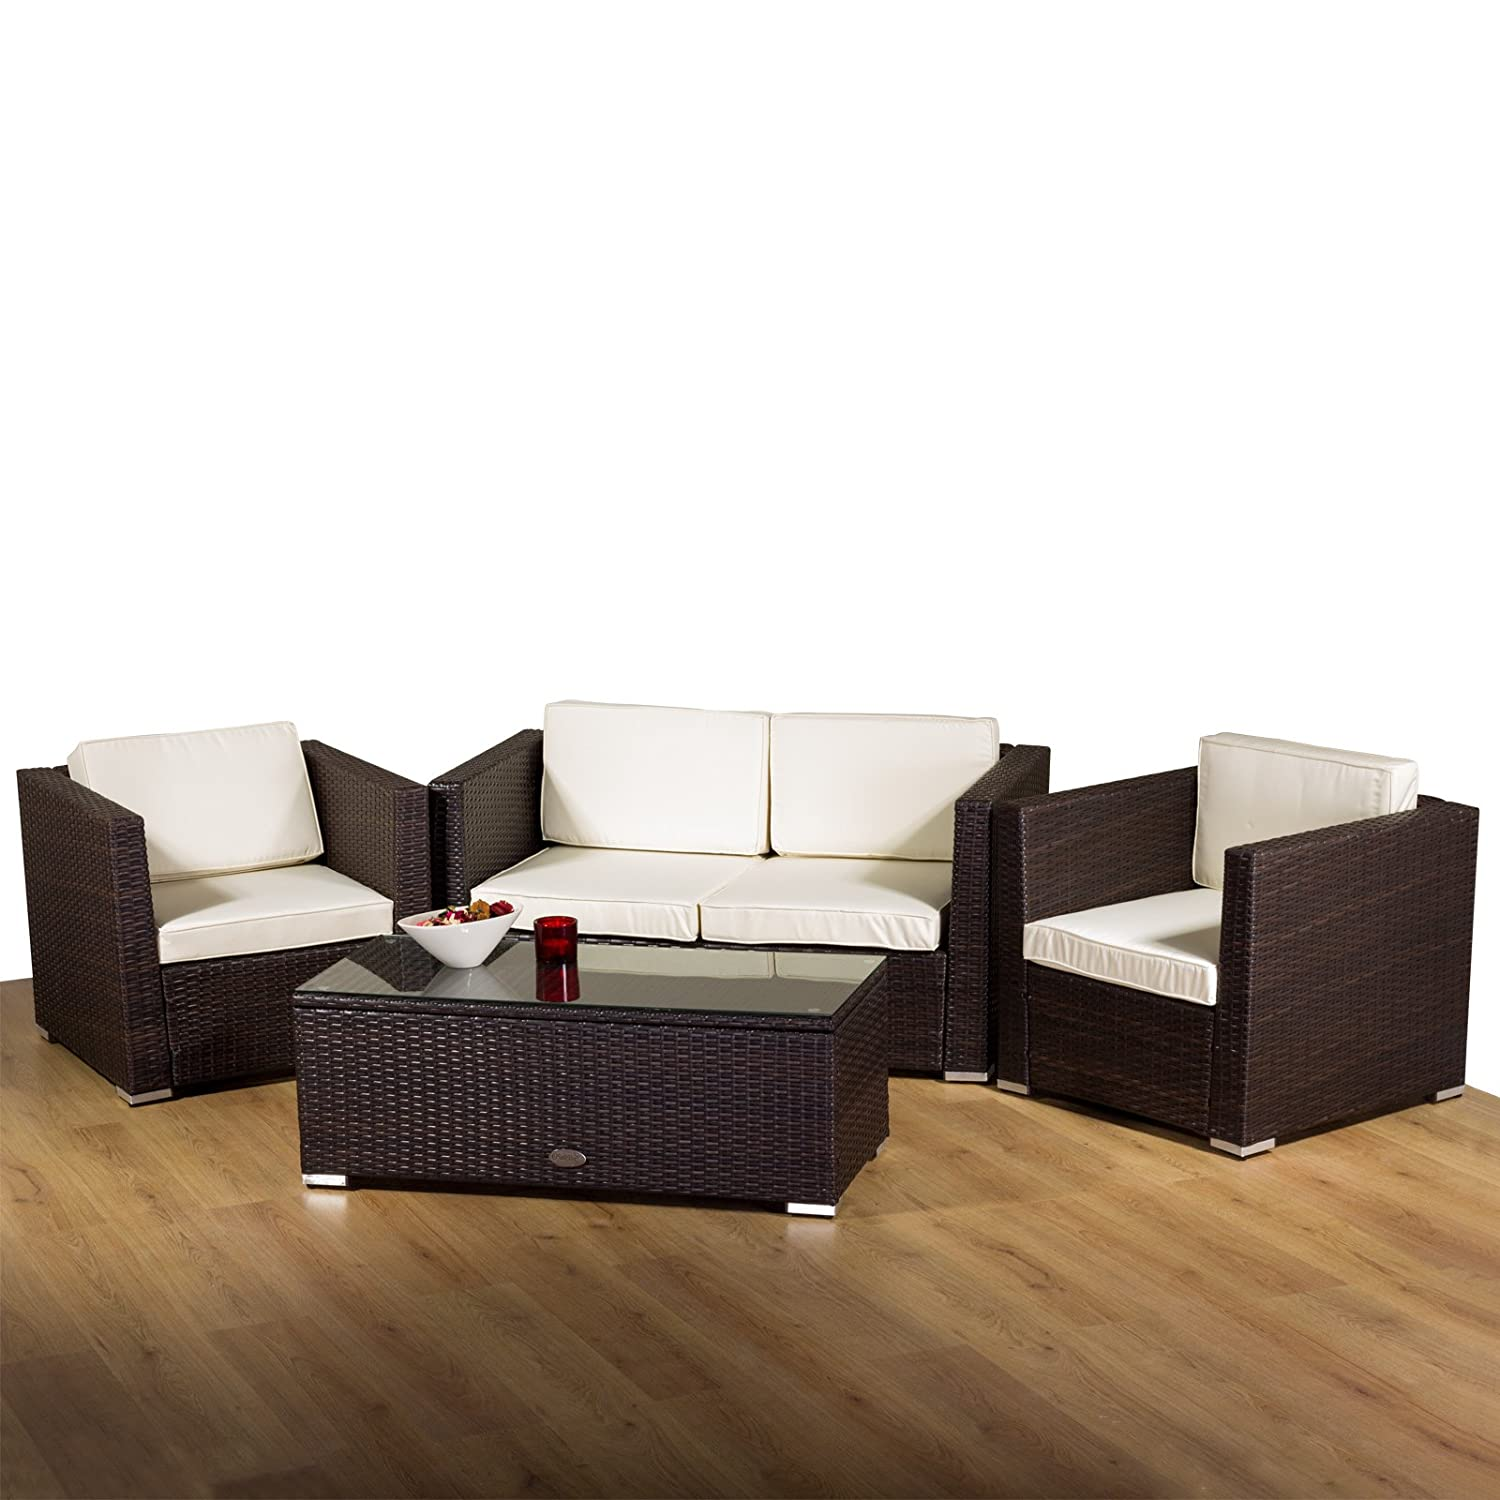 Oseasons New Rattan Oxford 4 Seater Conservatory Sofa Set in Brown